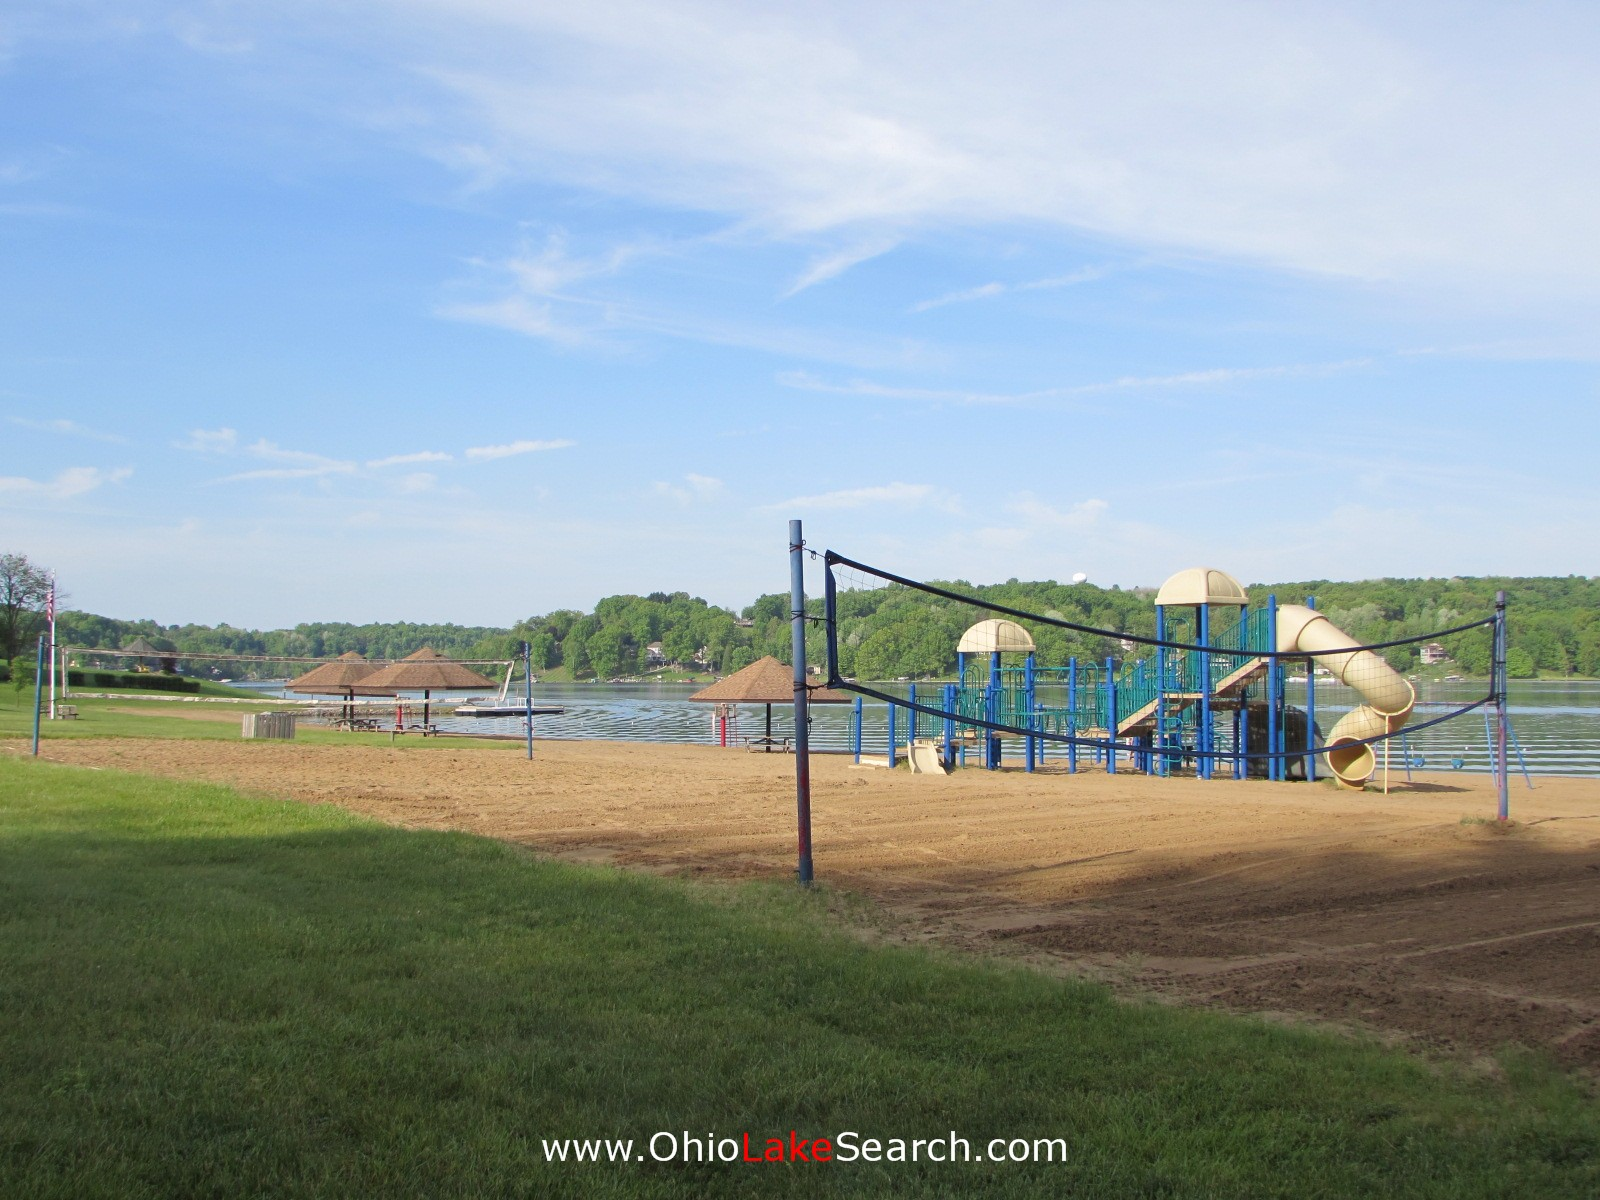 Lake Mohawk Ohio Sand Volleyball Courts